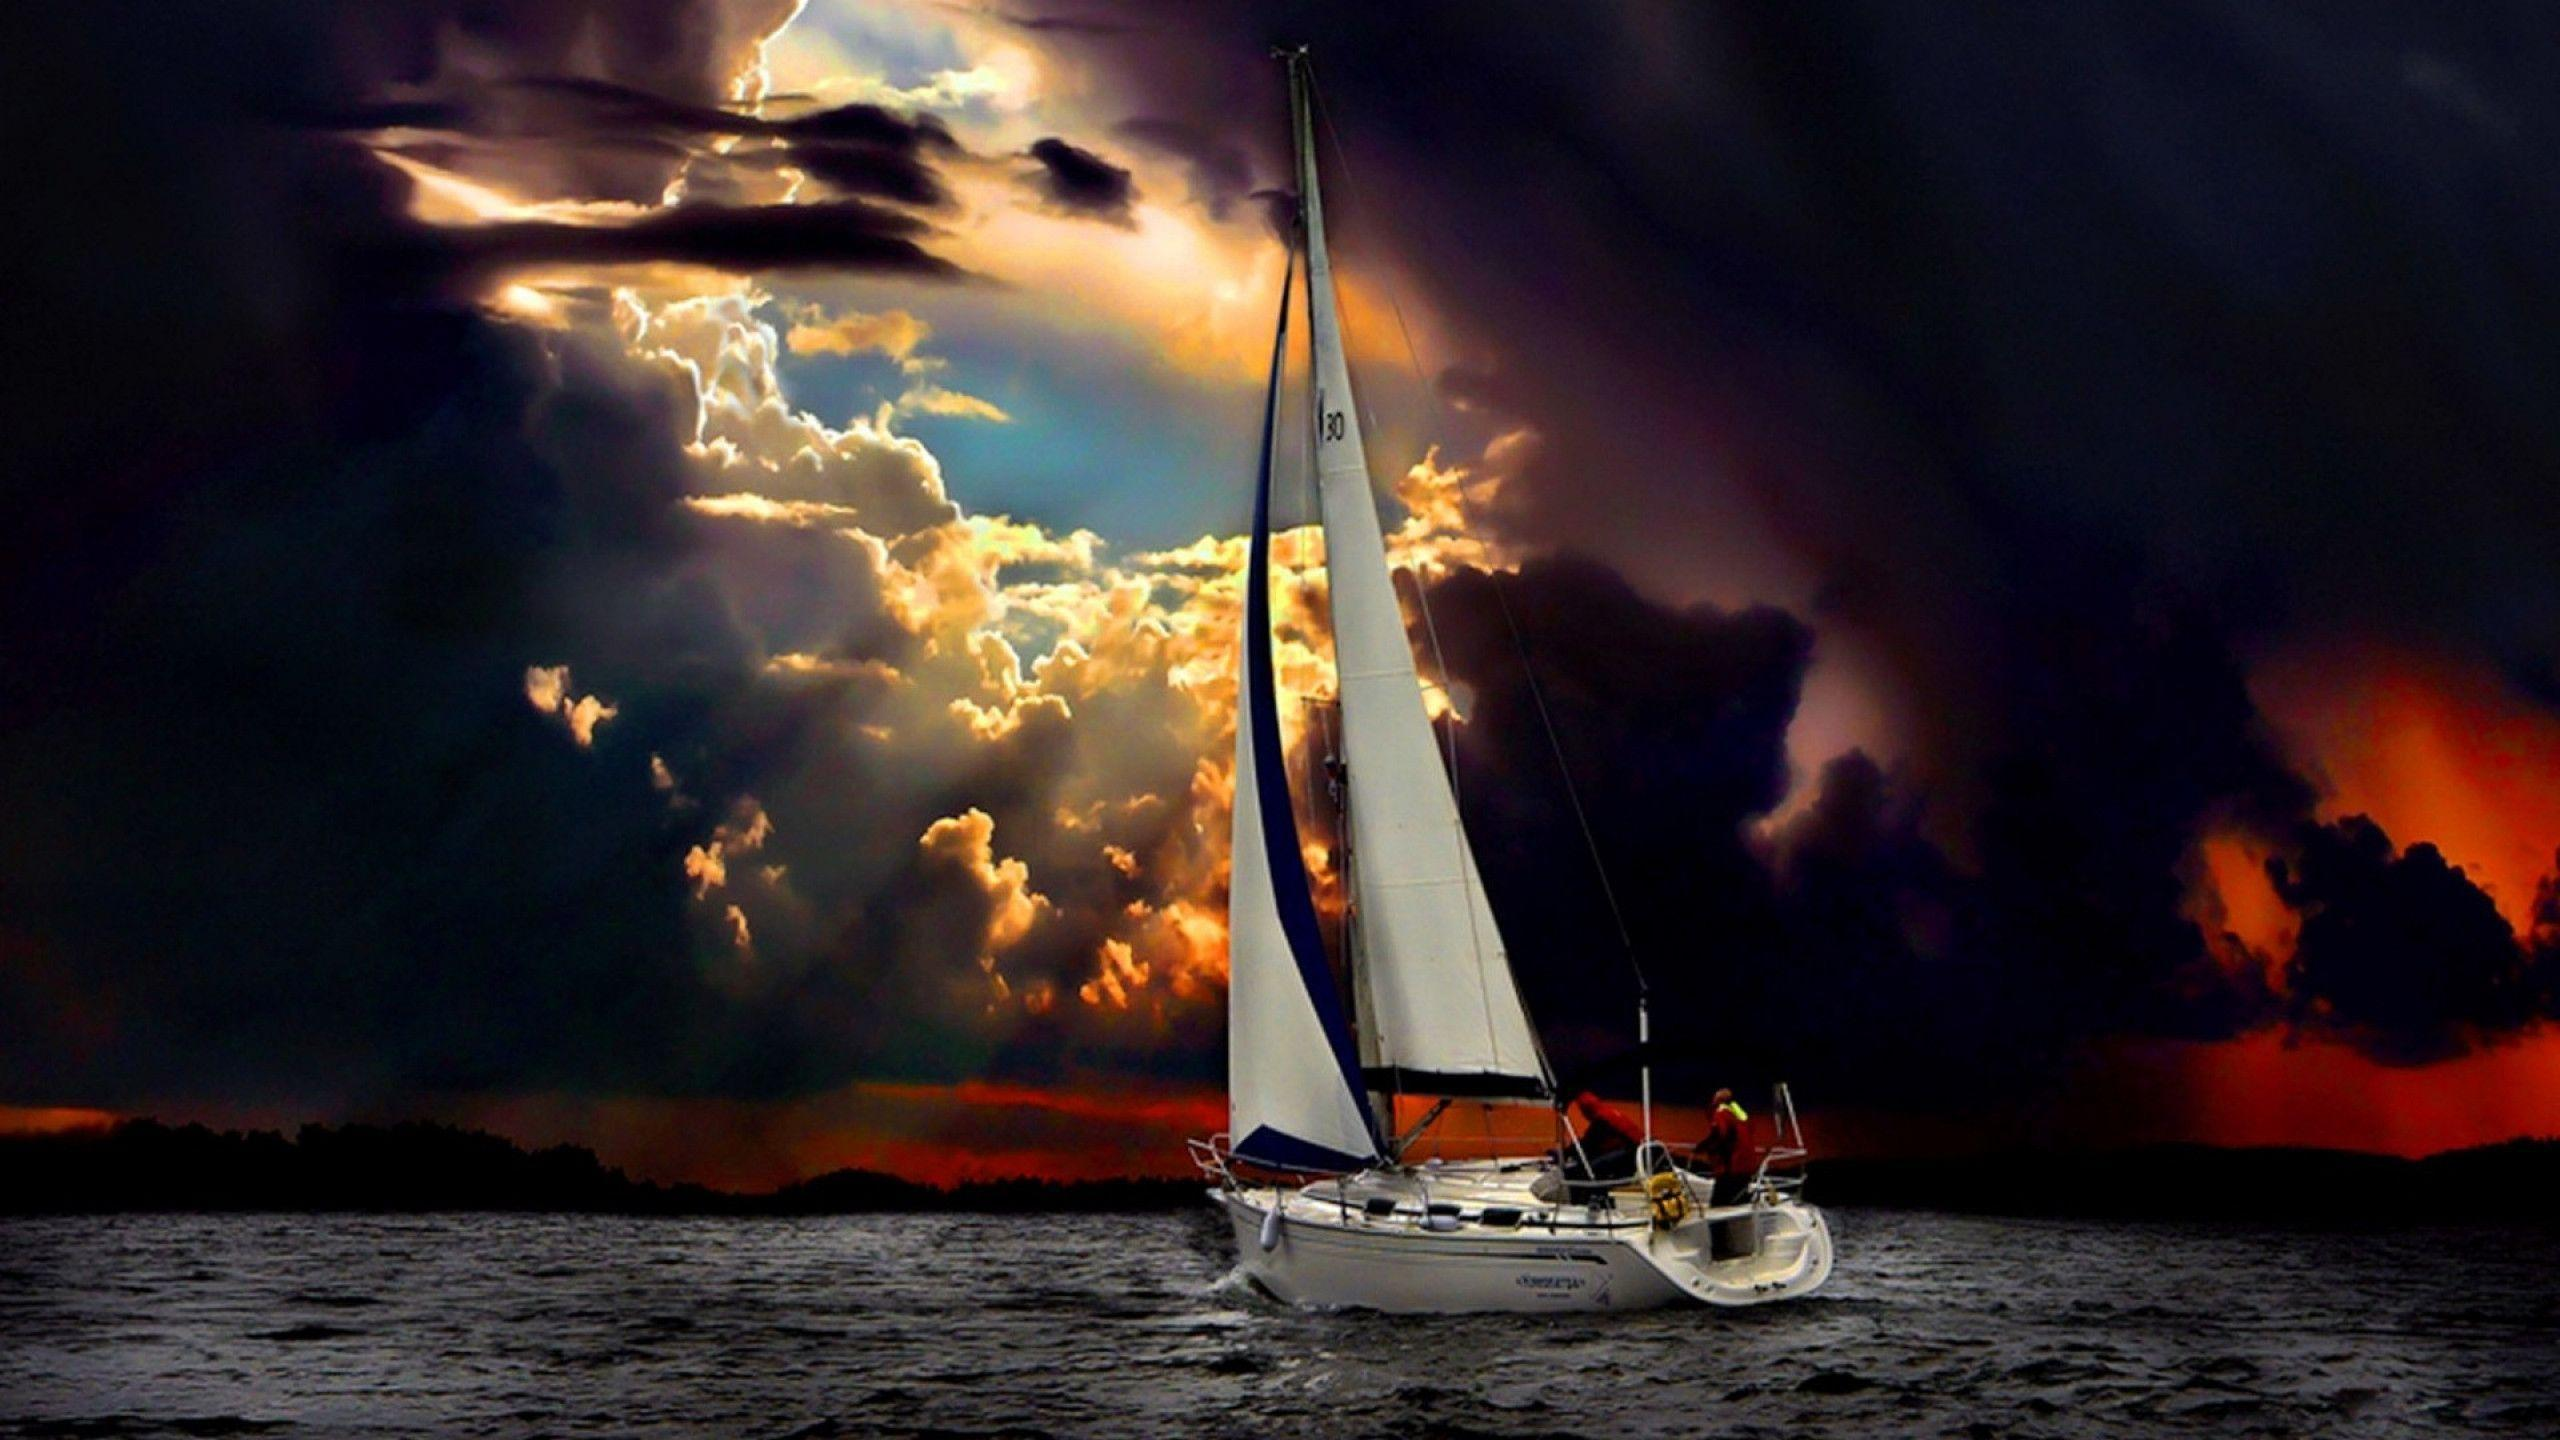 hungry for sailboat wallpaper - photo #5